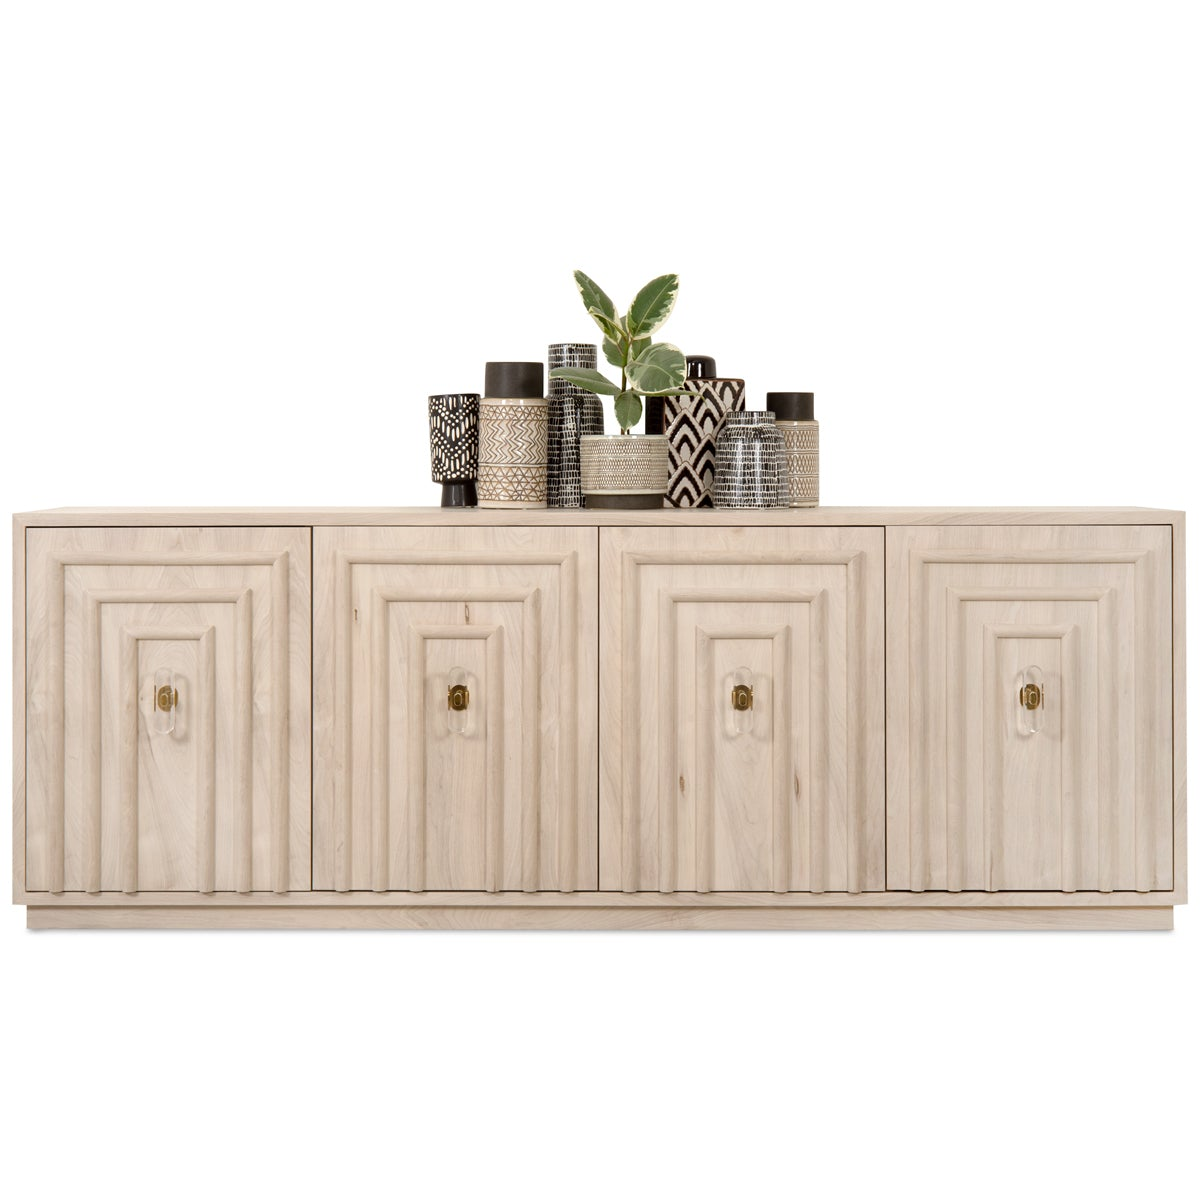 Art Deco 4 Door Credenza in Bleached Walnut - ModShop1.com